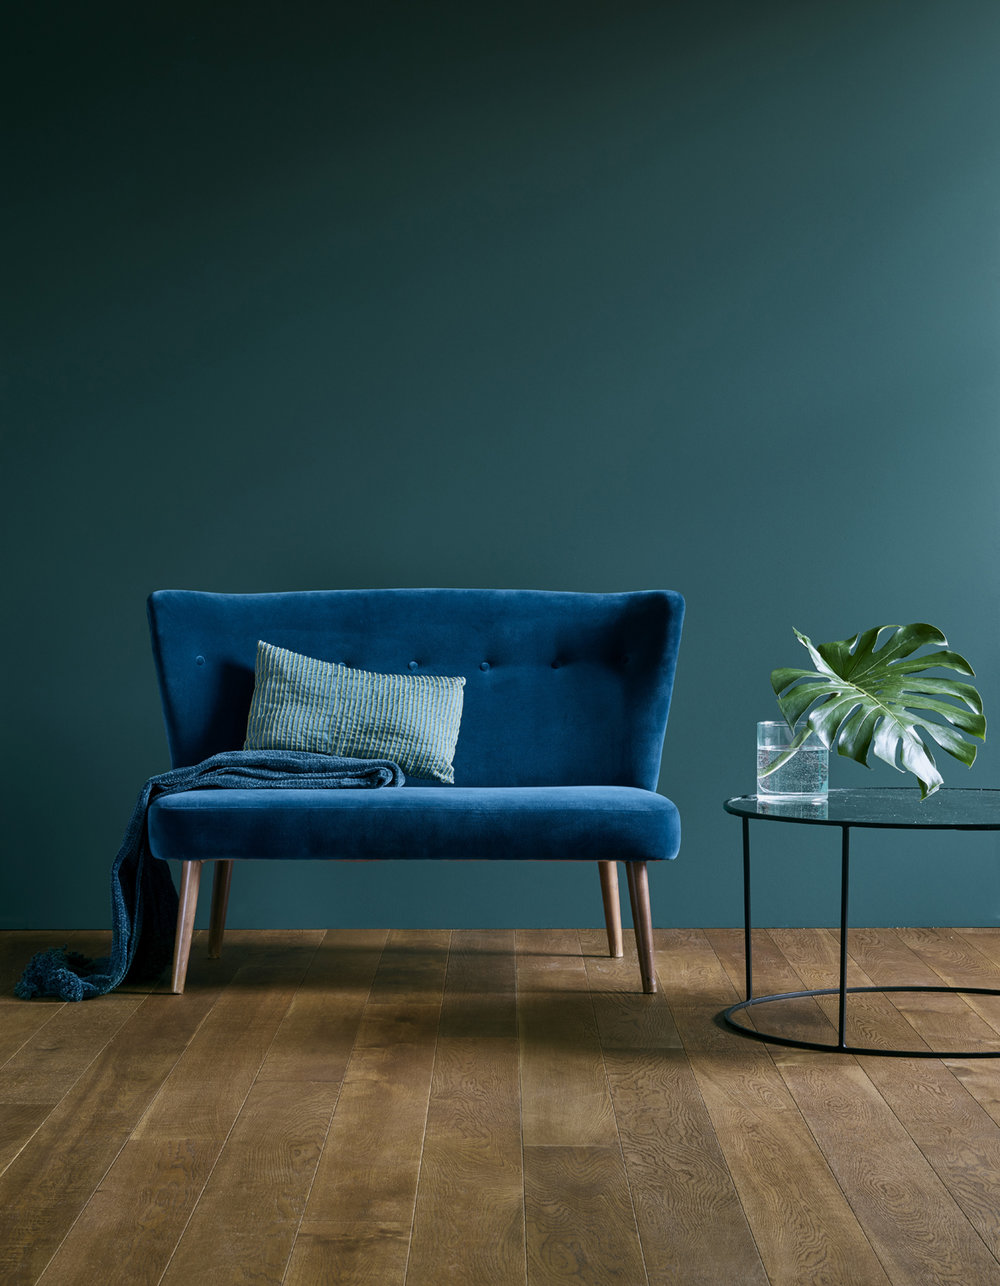 Vie Maison, Rustique Fume wooden flooring looks great next to teal and midnight velvet